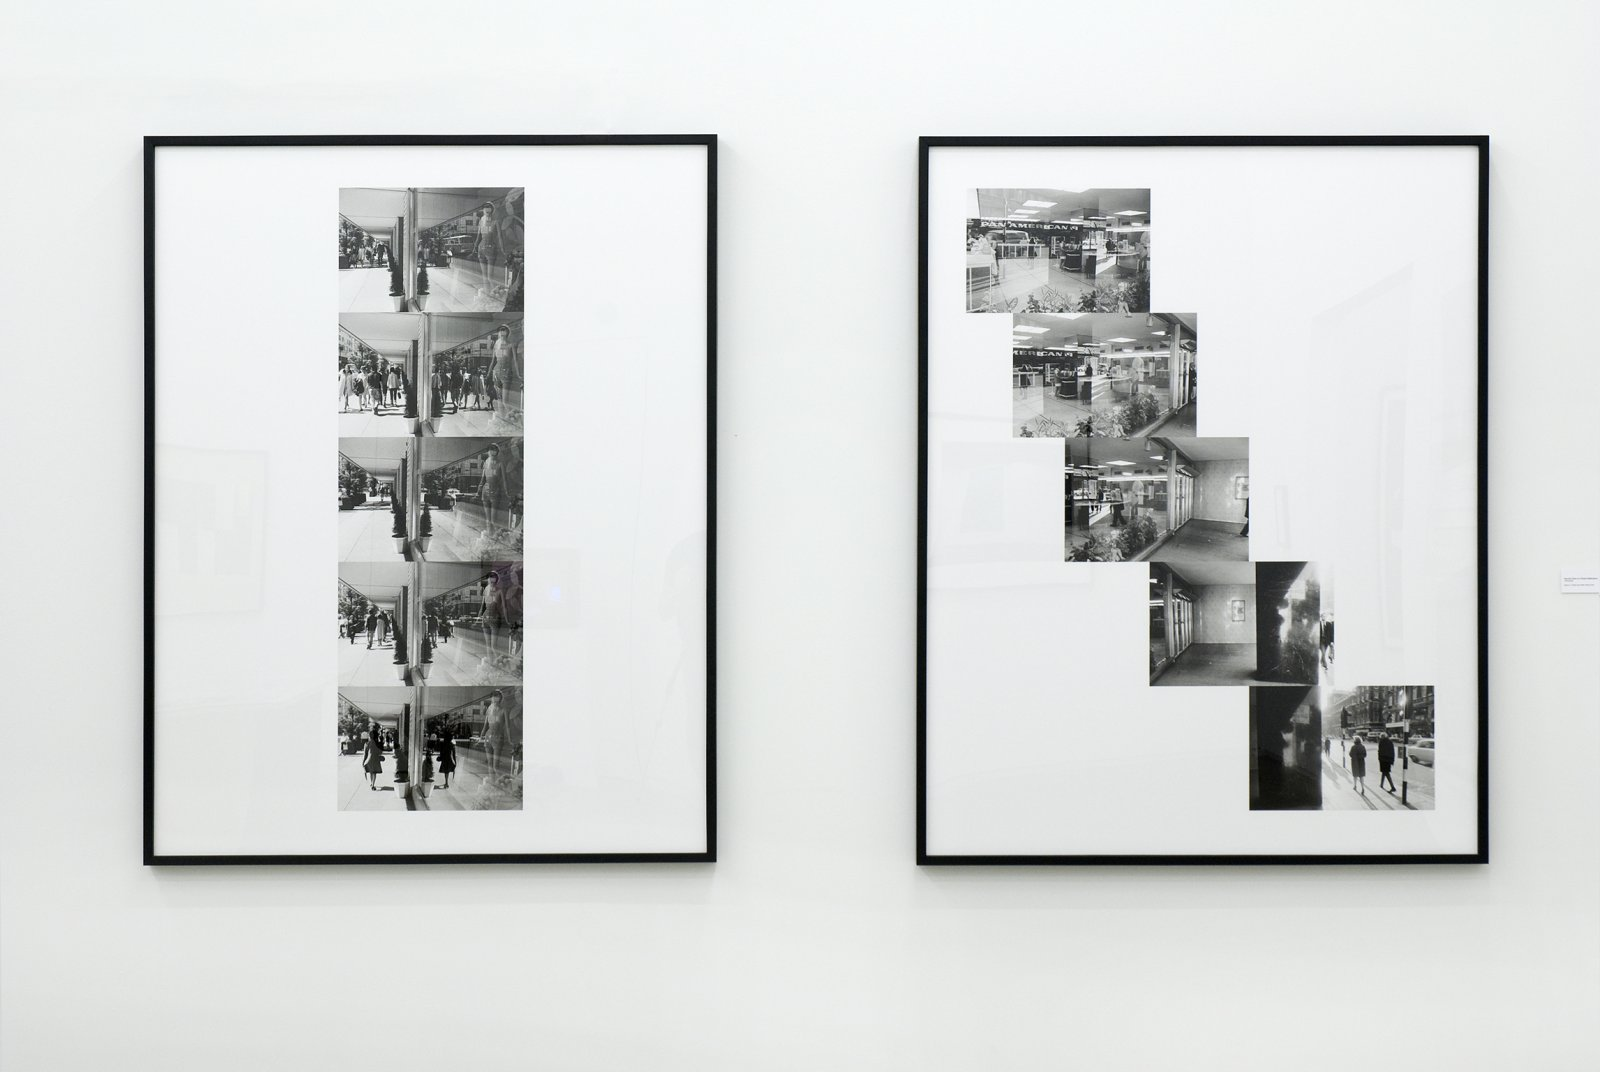 Ian Wallace,Street ReflectionsandPan Am Scan, 1970–2009, 2black and white photo inkets, each 61 x 48 in. (154 x 121 cm)